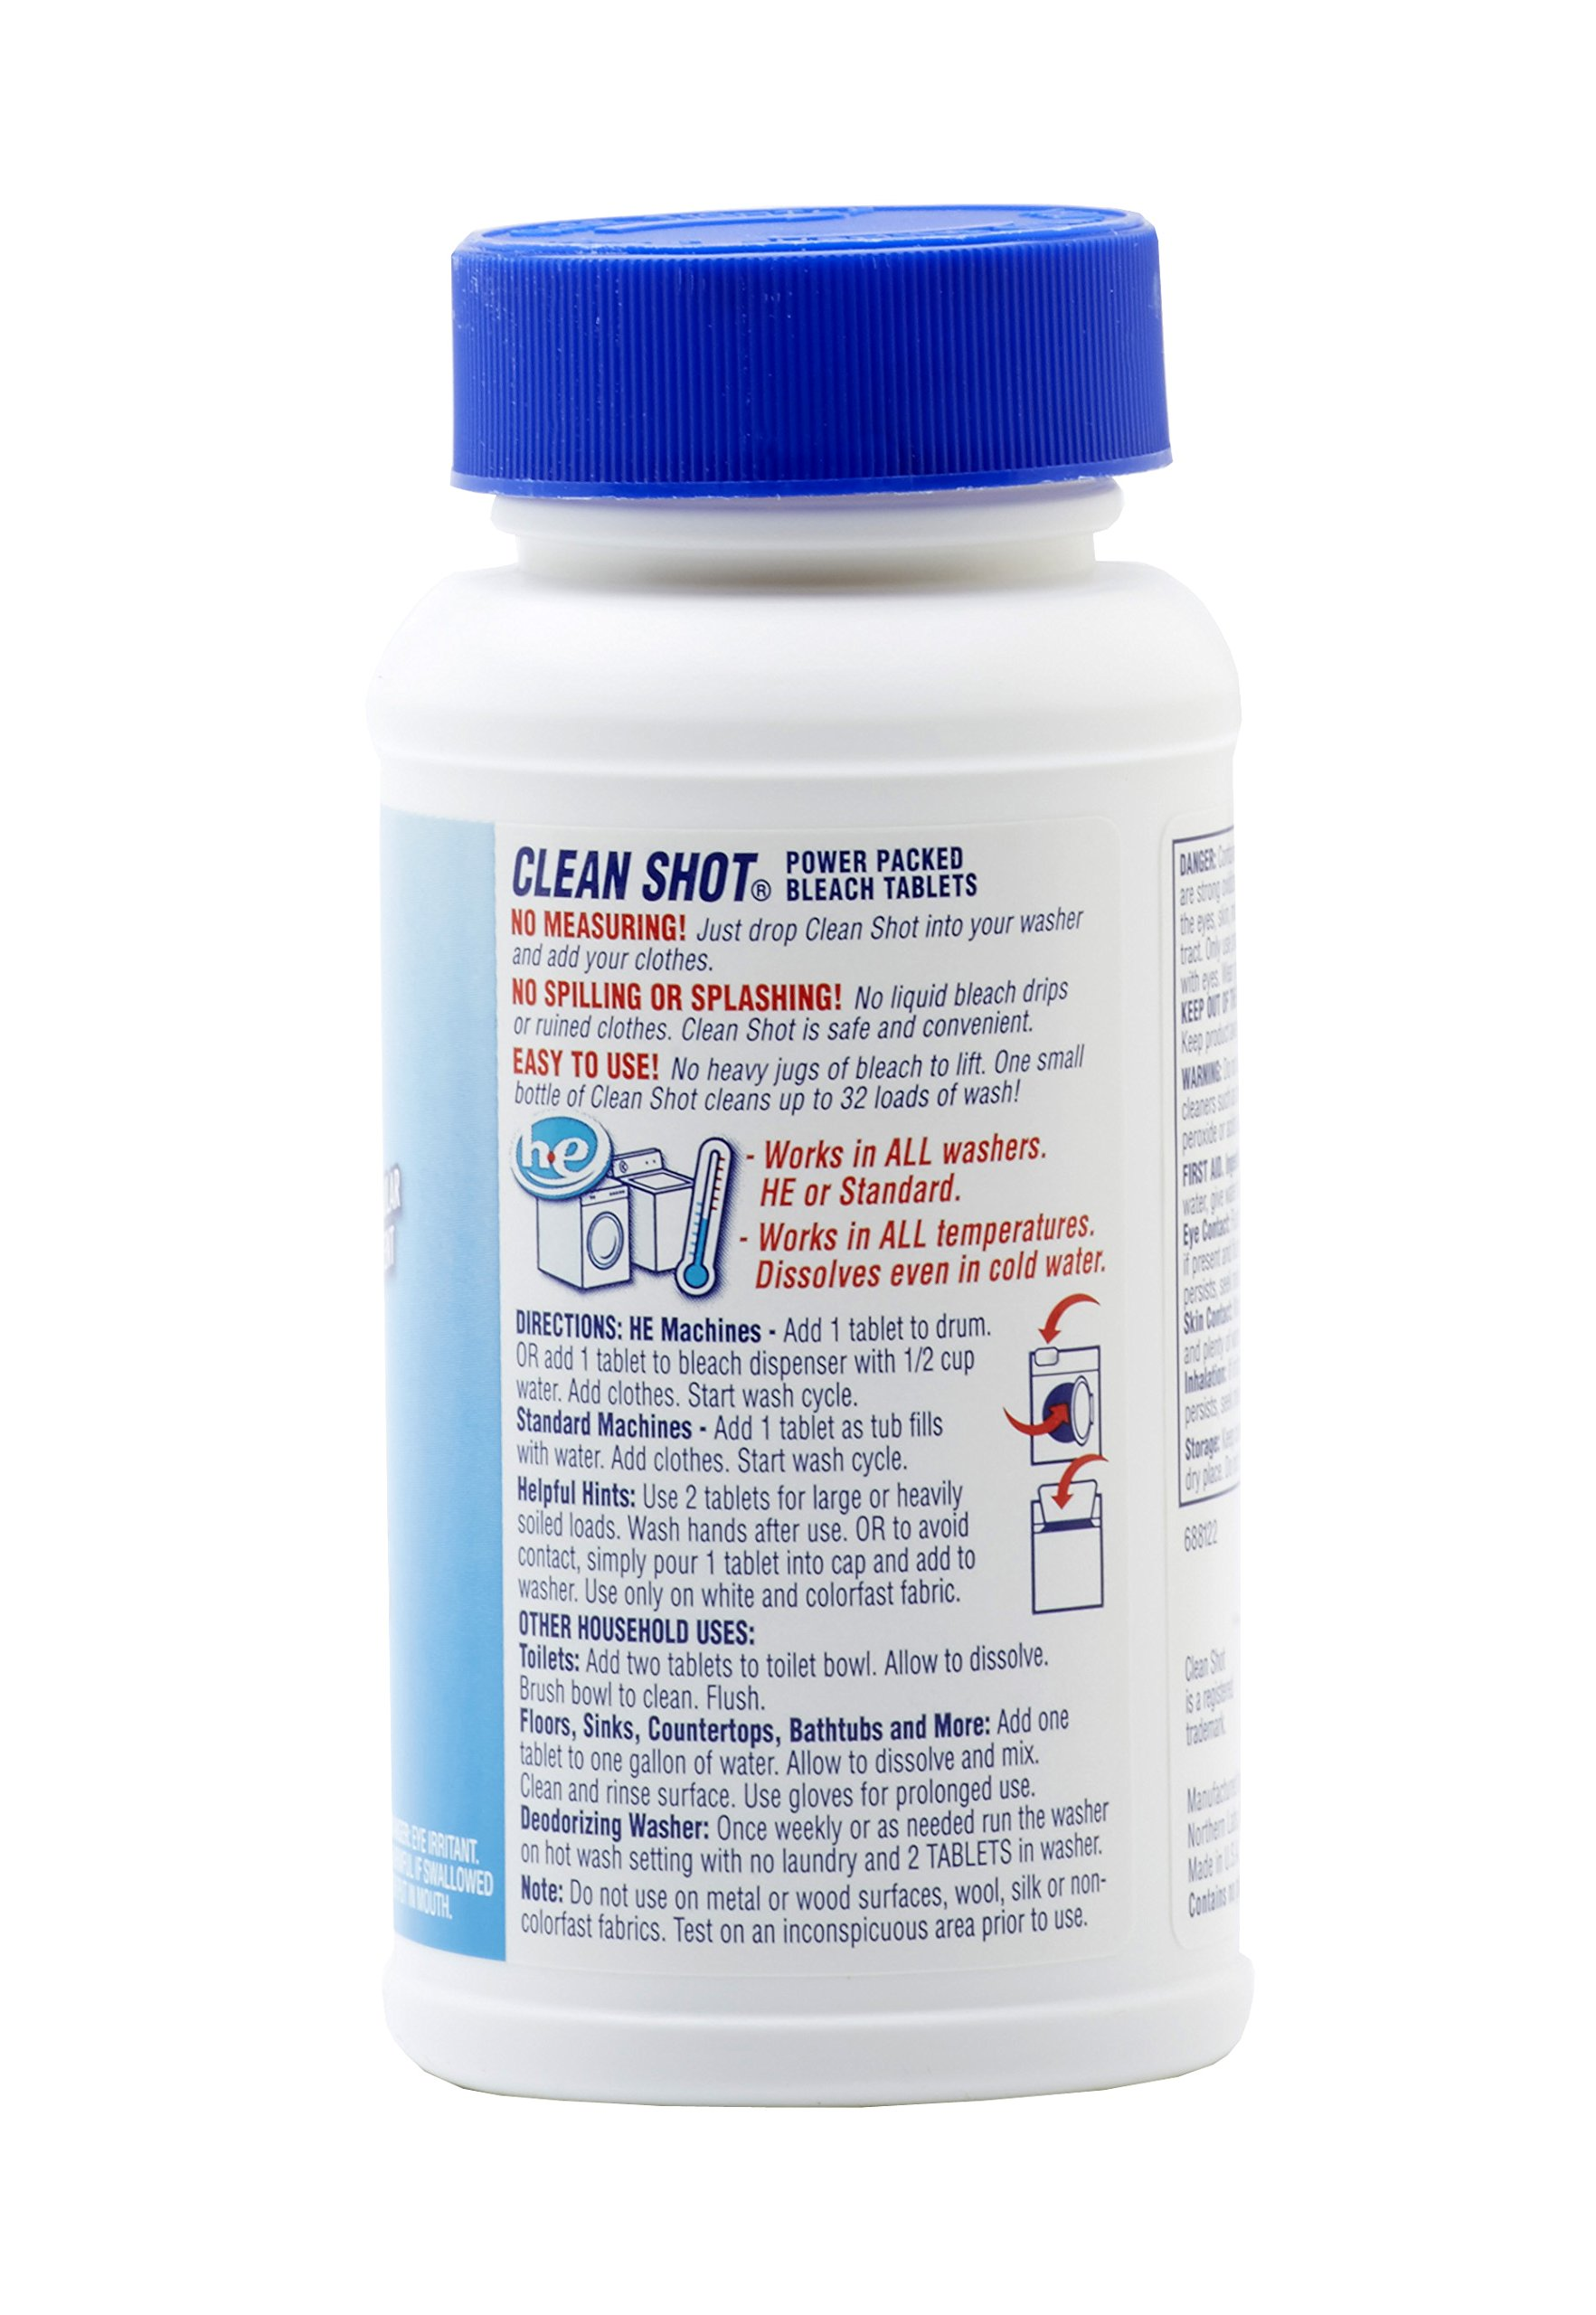 Clean Shot Bleach Tablets - 32 Ct. (5.64 oz) Concentrated Bleach Cleaner - For Laundry, Kitchen, Bathroom Tiles - Original Scent